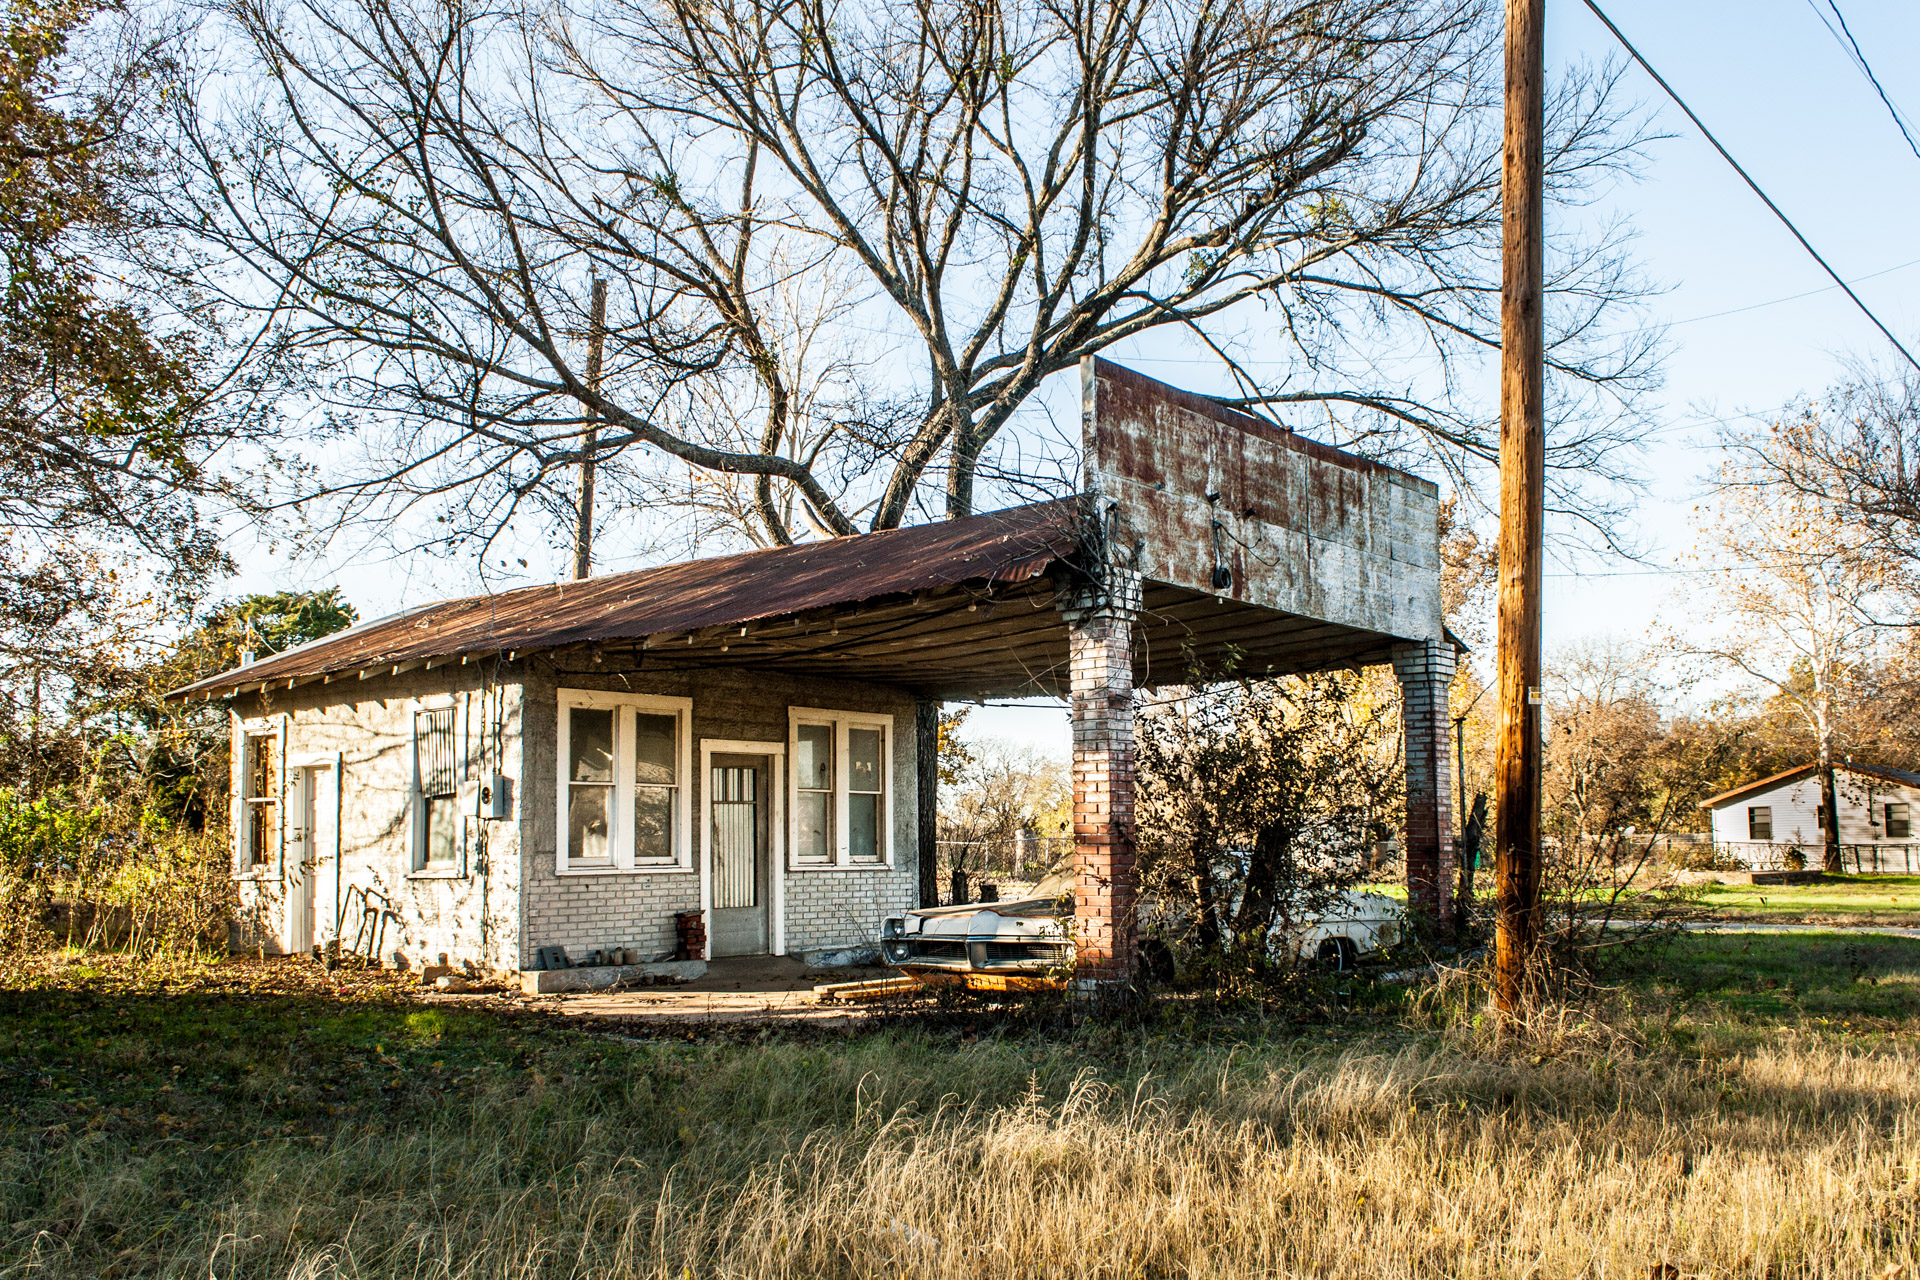 Tehuacana, Texas - The Pontiac Gas Station